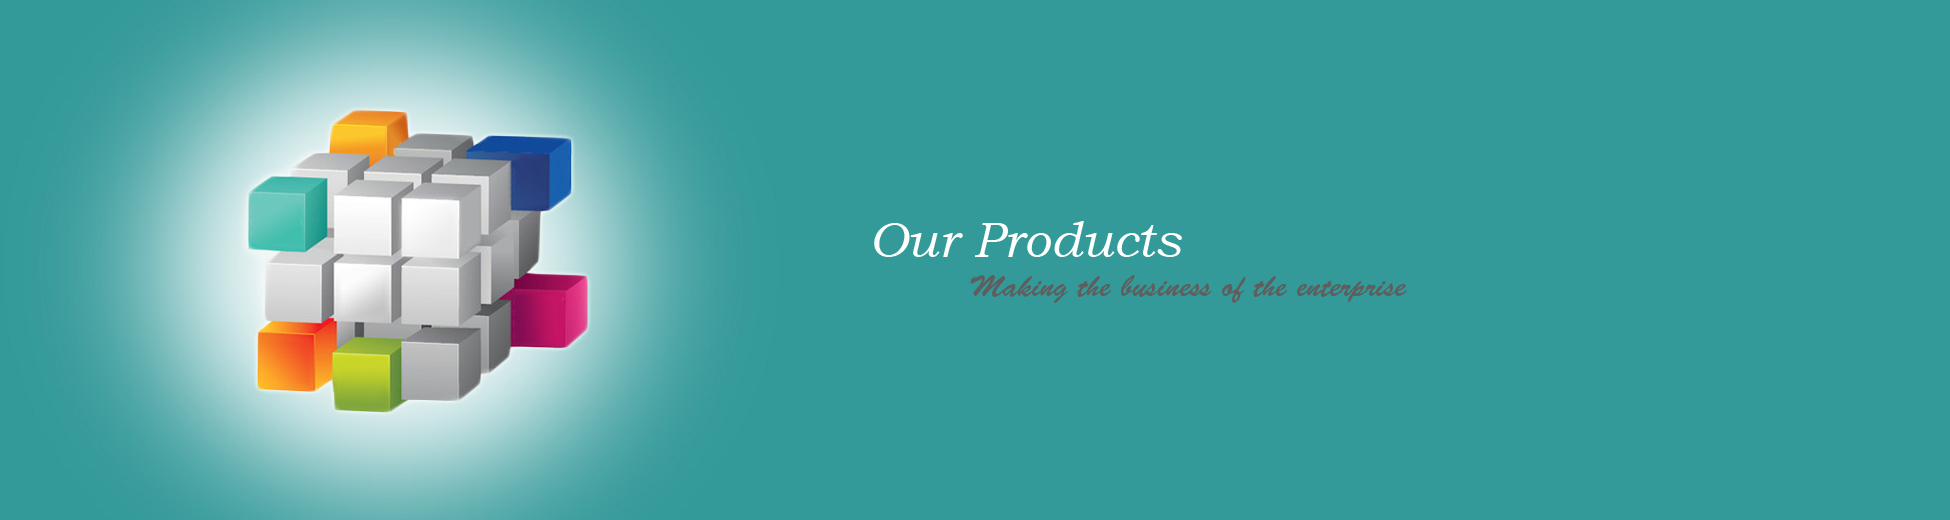 ourproducts